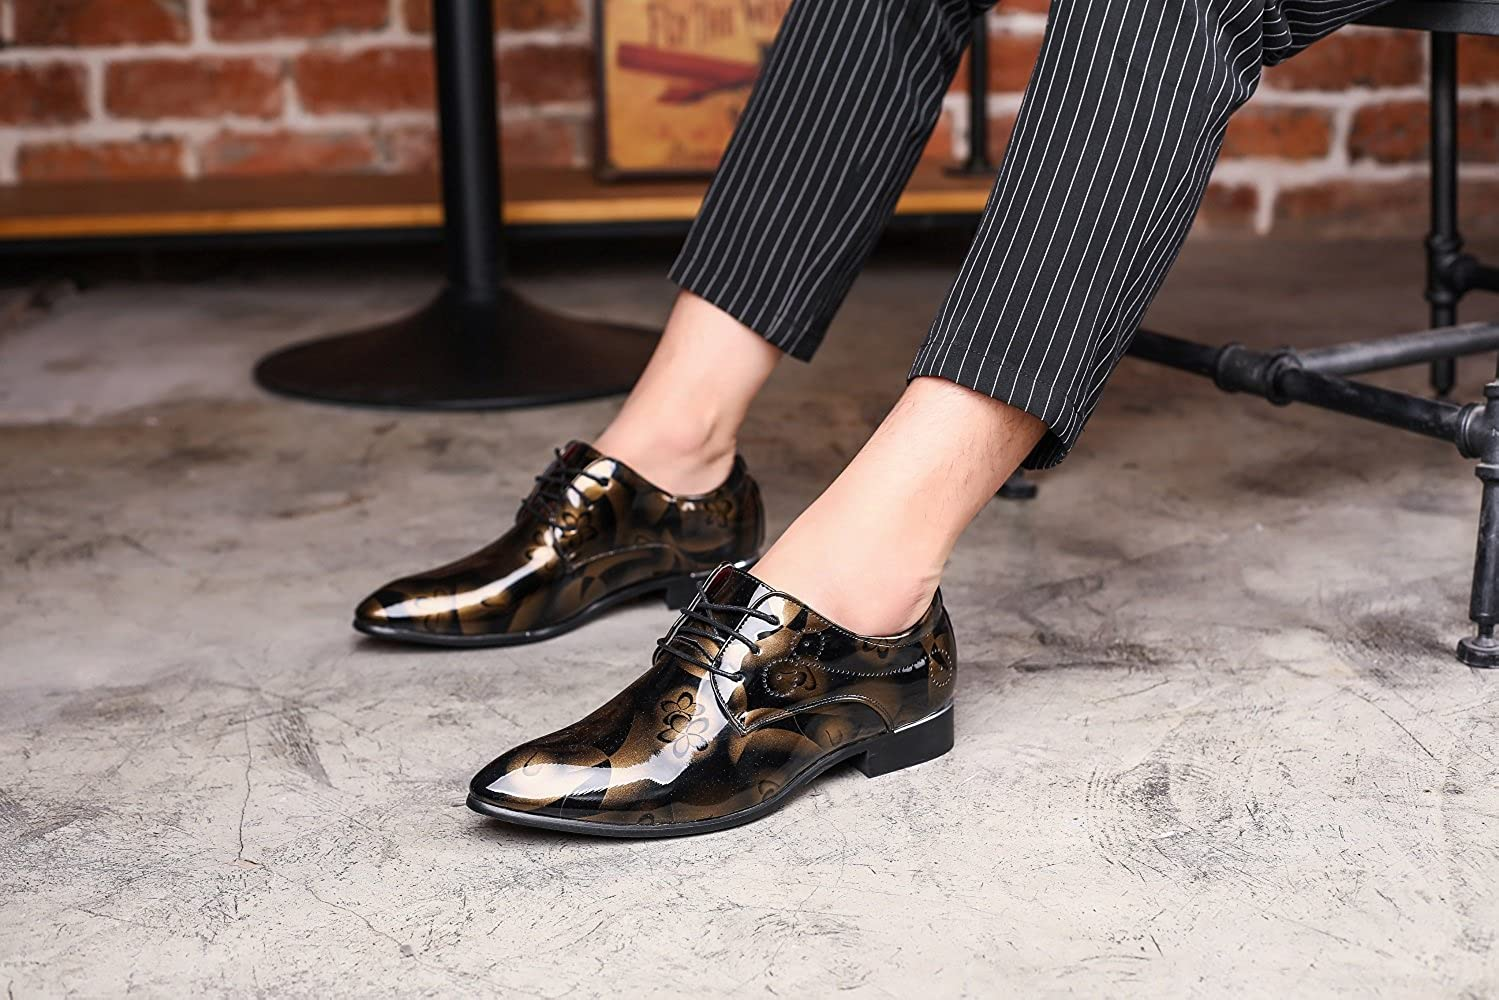 Business Wedding Formal Patent Leather Casual Lace Floral Red Gray 5.5-13 JOYTO Mens Dress Shoes Oxford